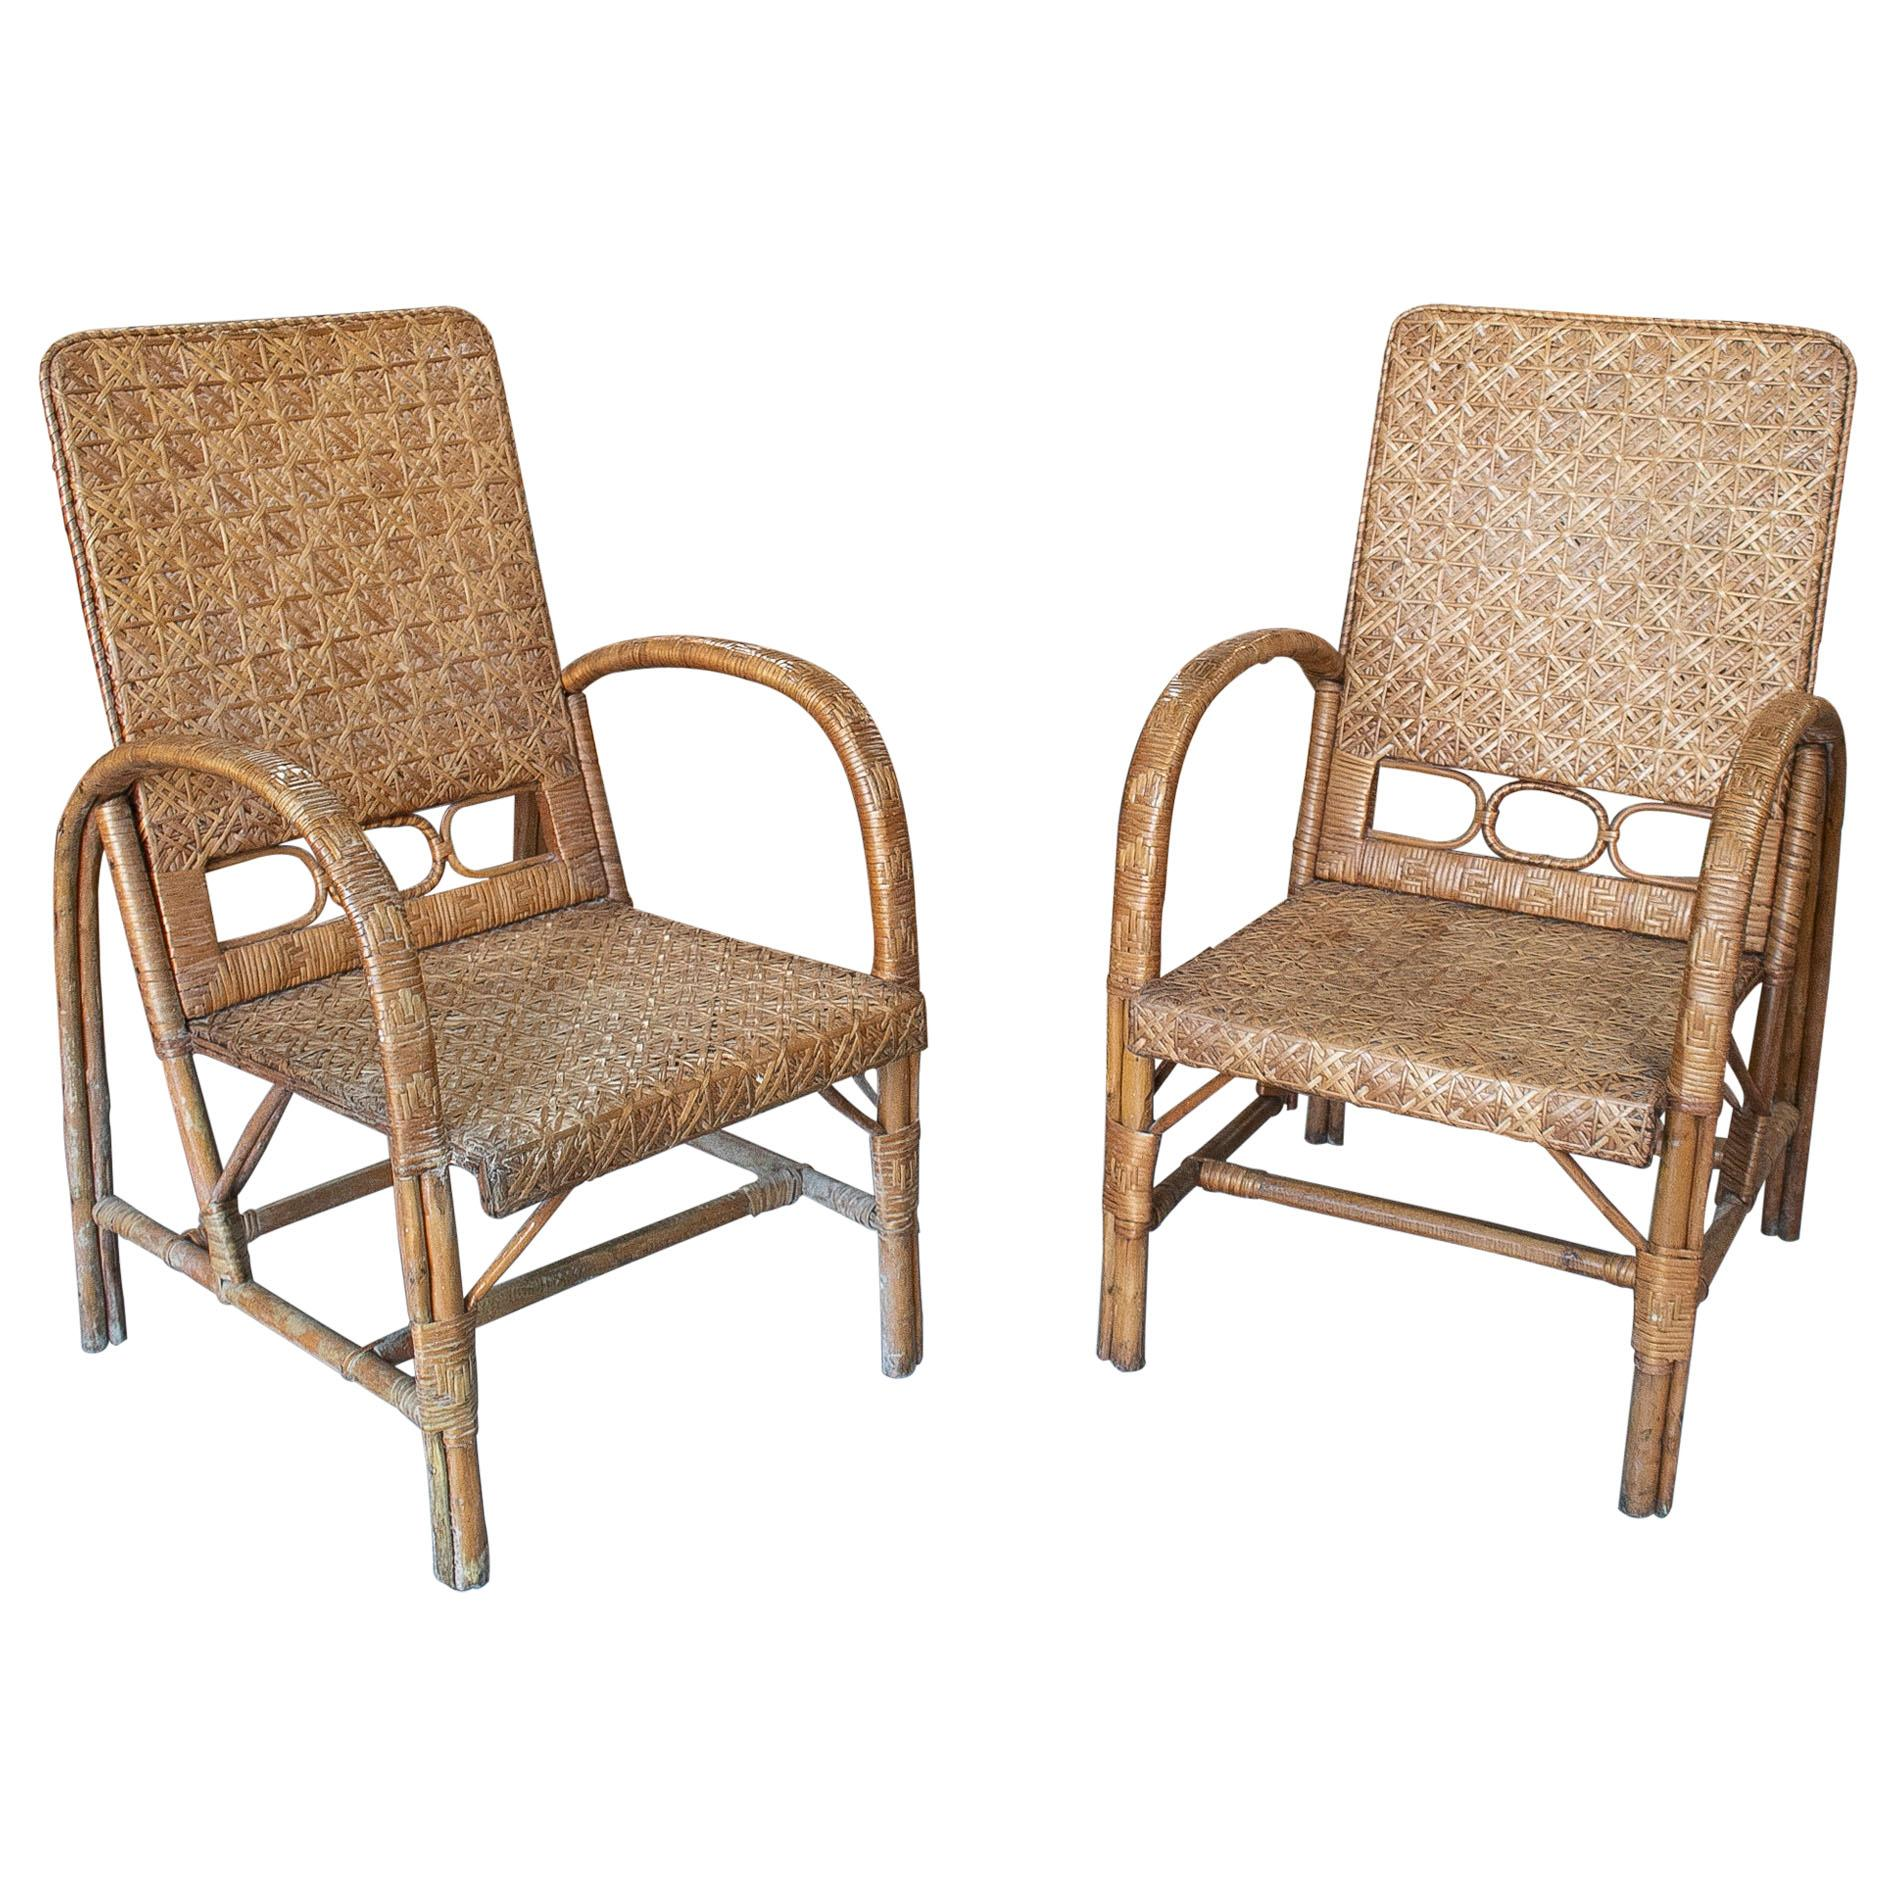 Vintage Pair of 1950s Spanish Hand Woven Wicker on Wood Armchairs